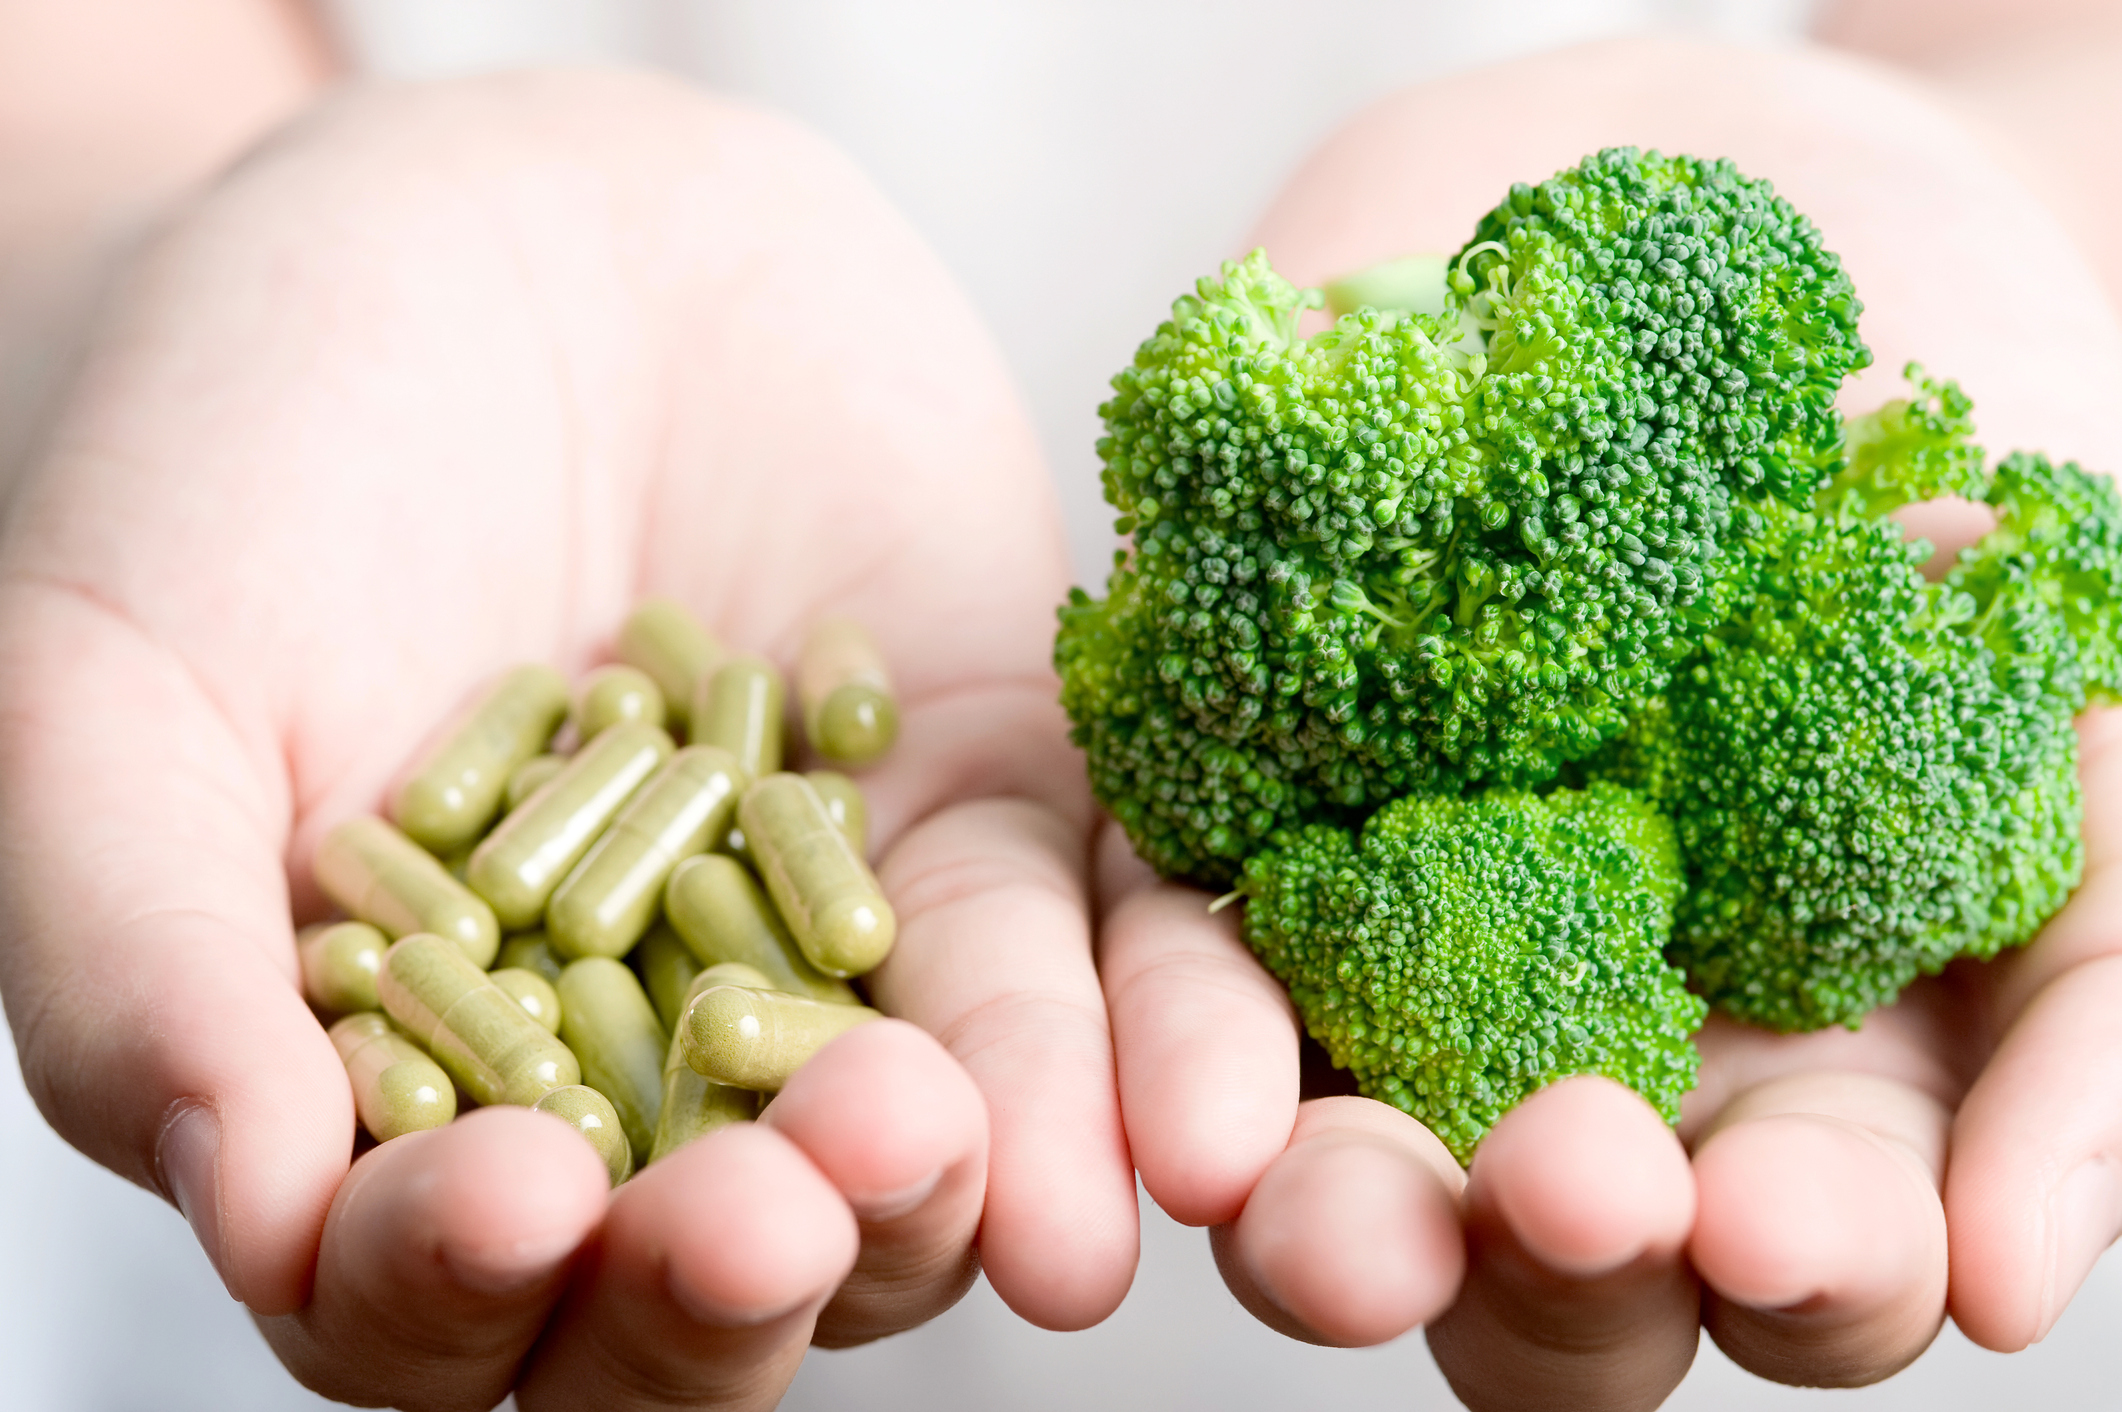 Vitamins and Supplements Can't Replace